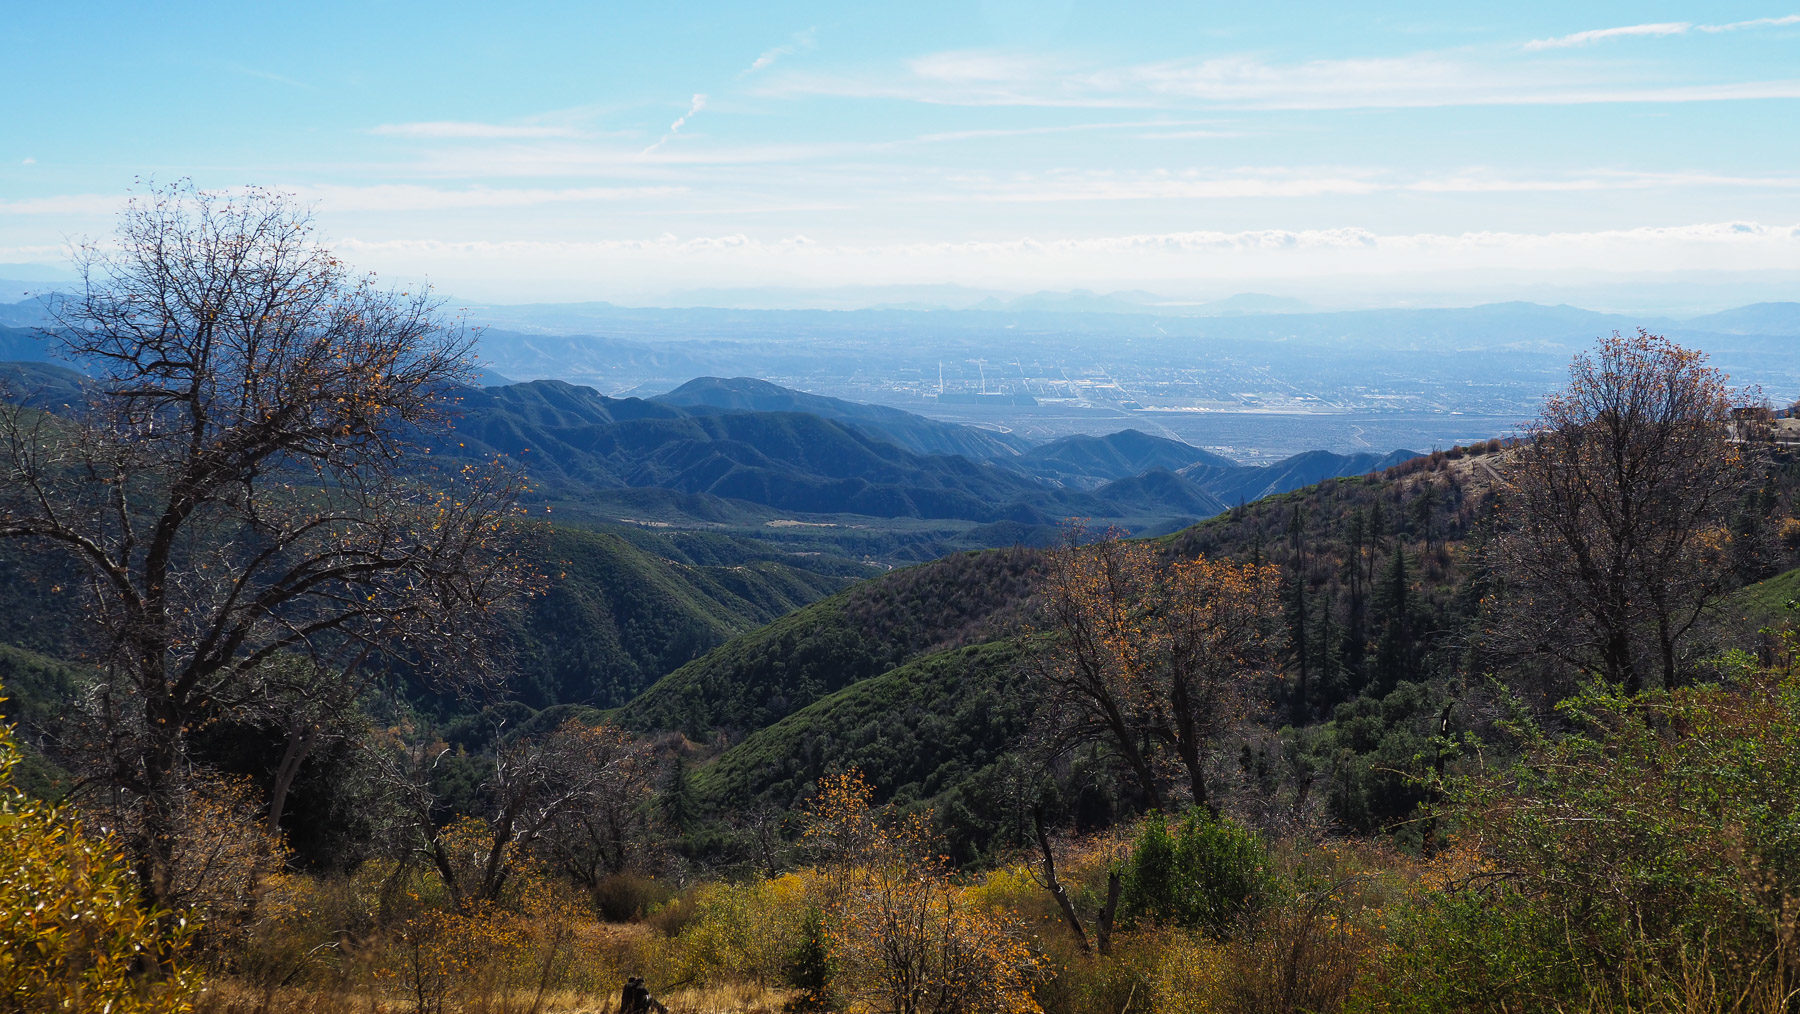 San Bernardino Mountains bei Los Angeles